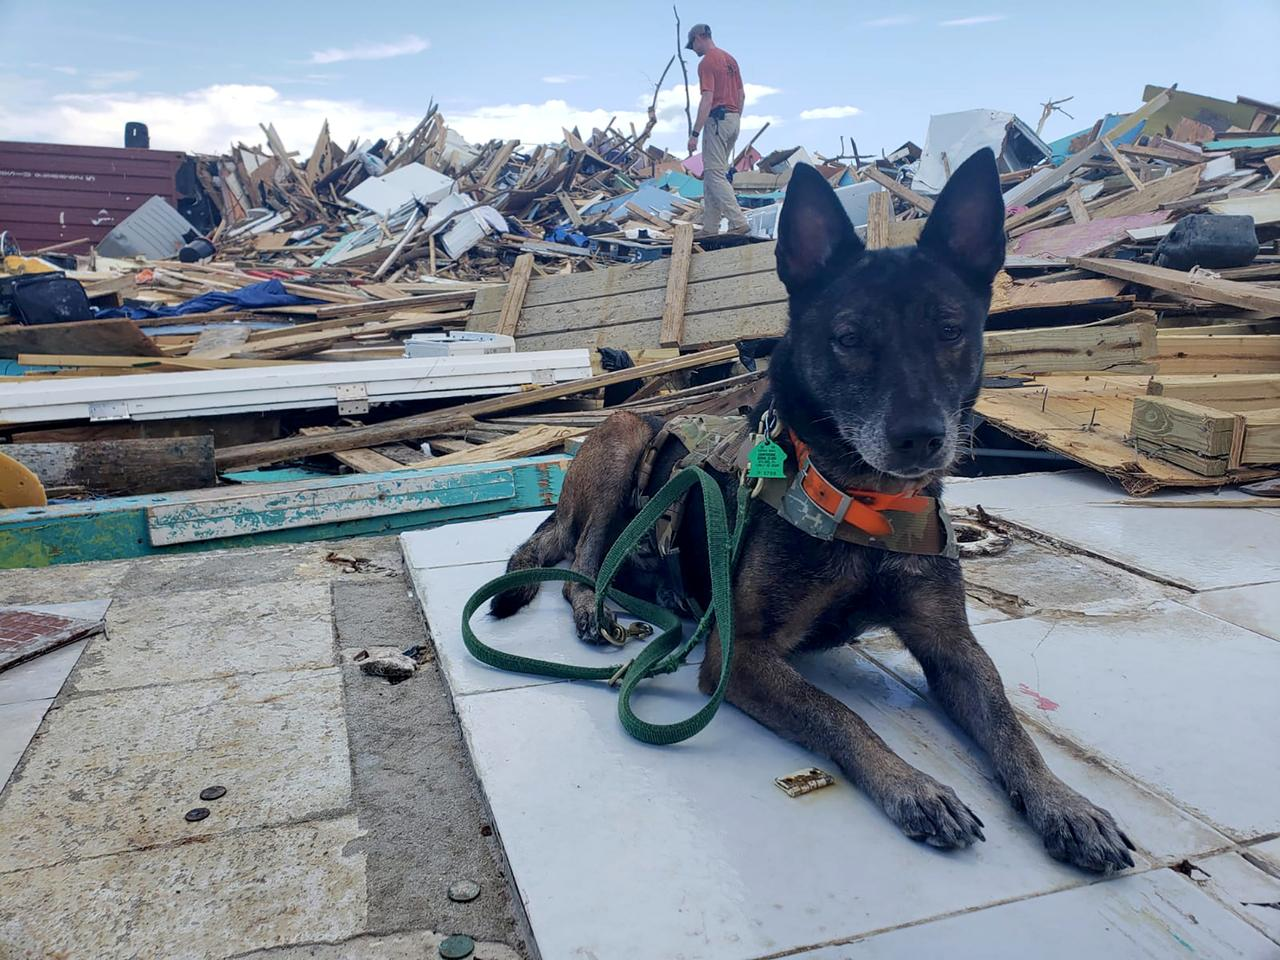 With dogs and spray paint, crews in grim search for Dorian's